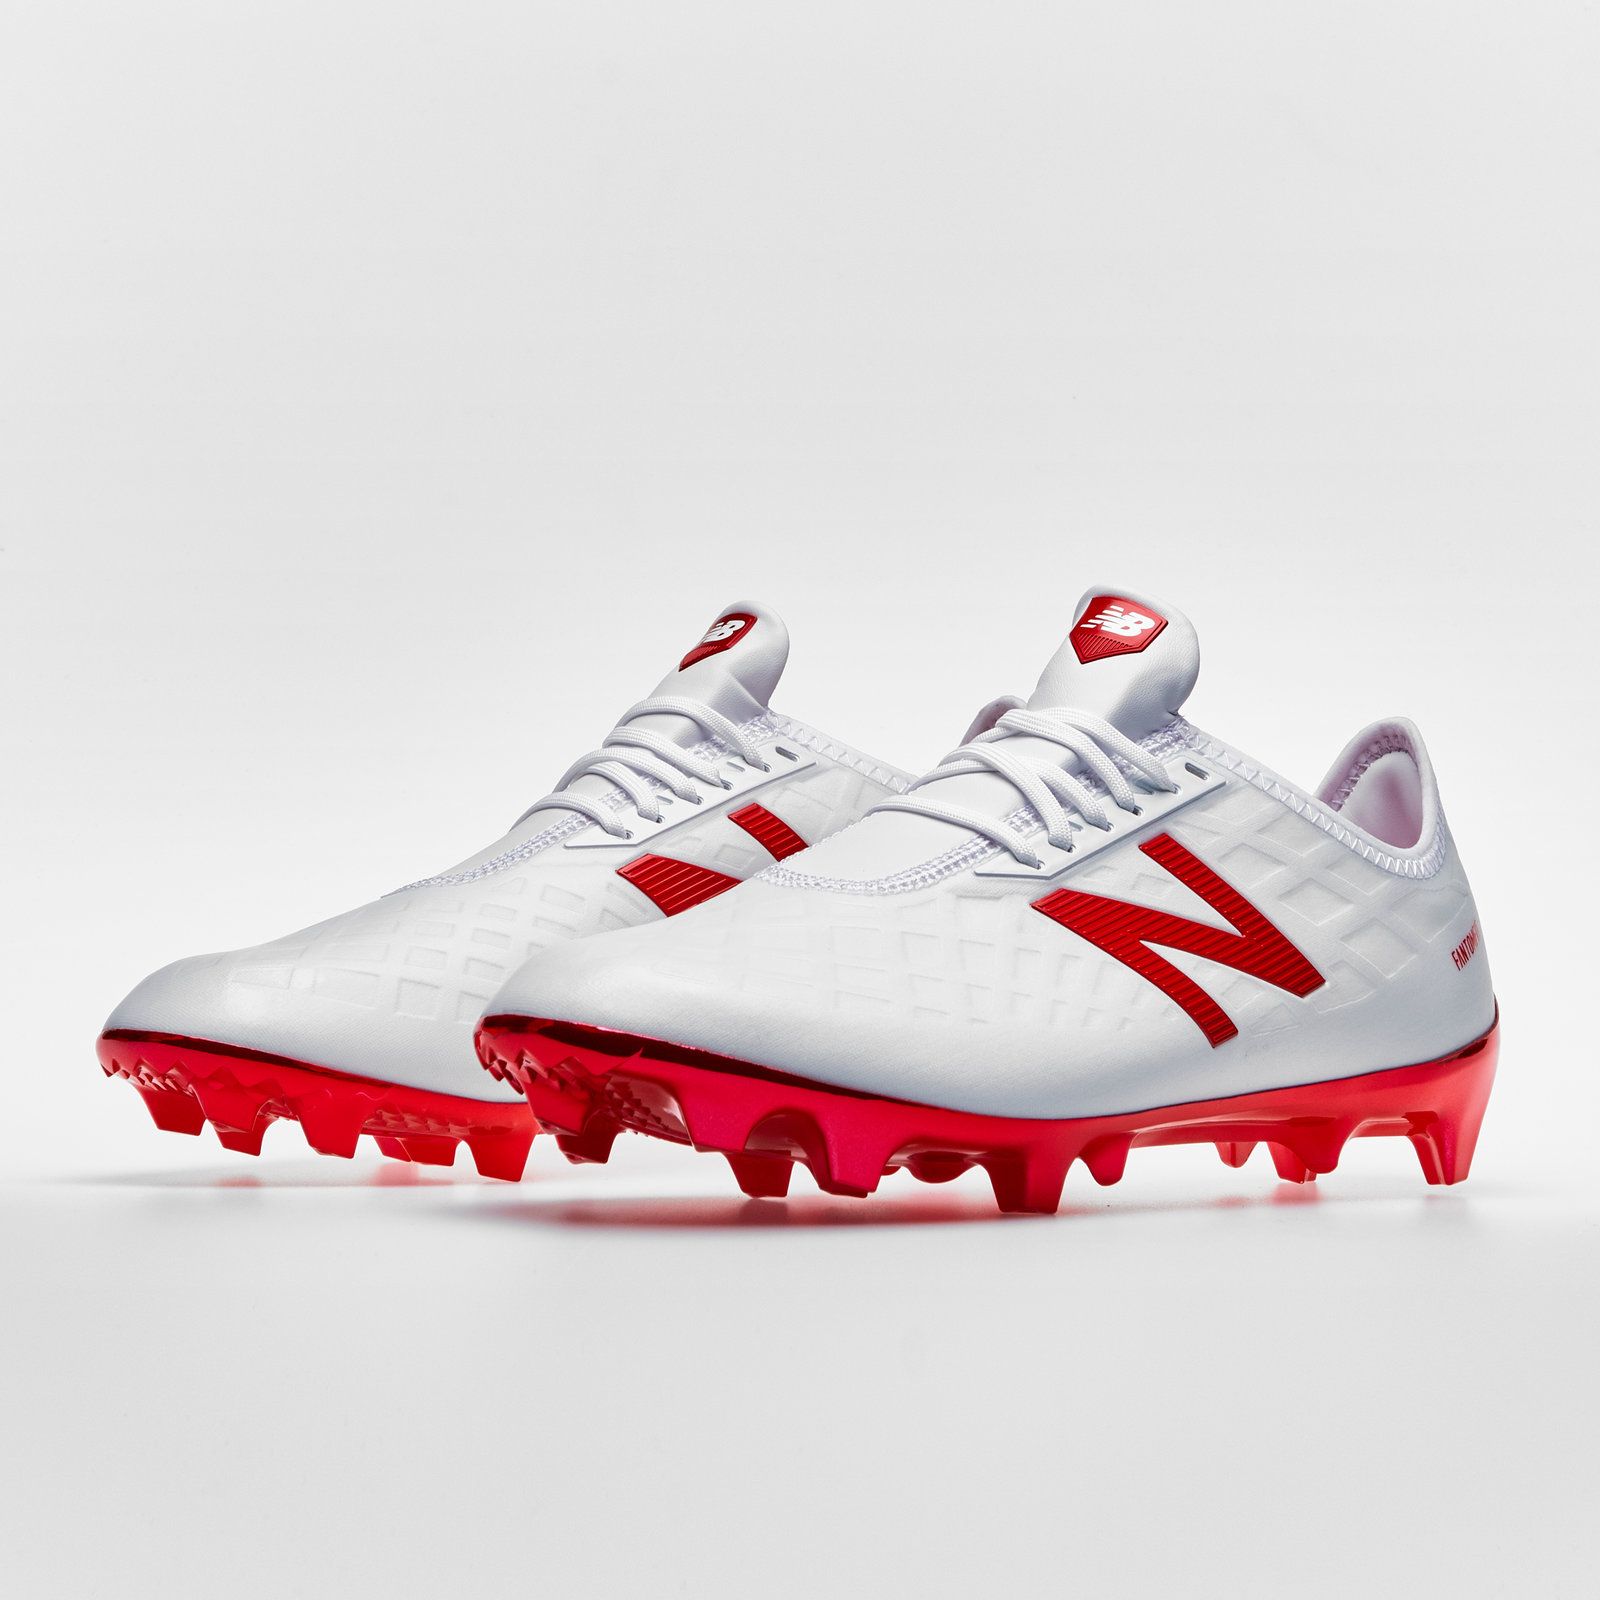 new arrival 40792 89815 Details about New Balance Mens Furon 4.0 Pro Firm Ground World Cup Football  Boots Trainers